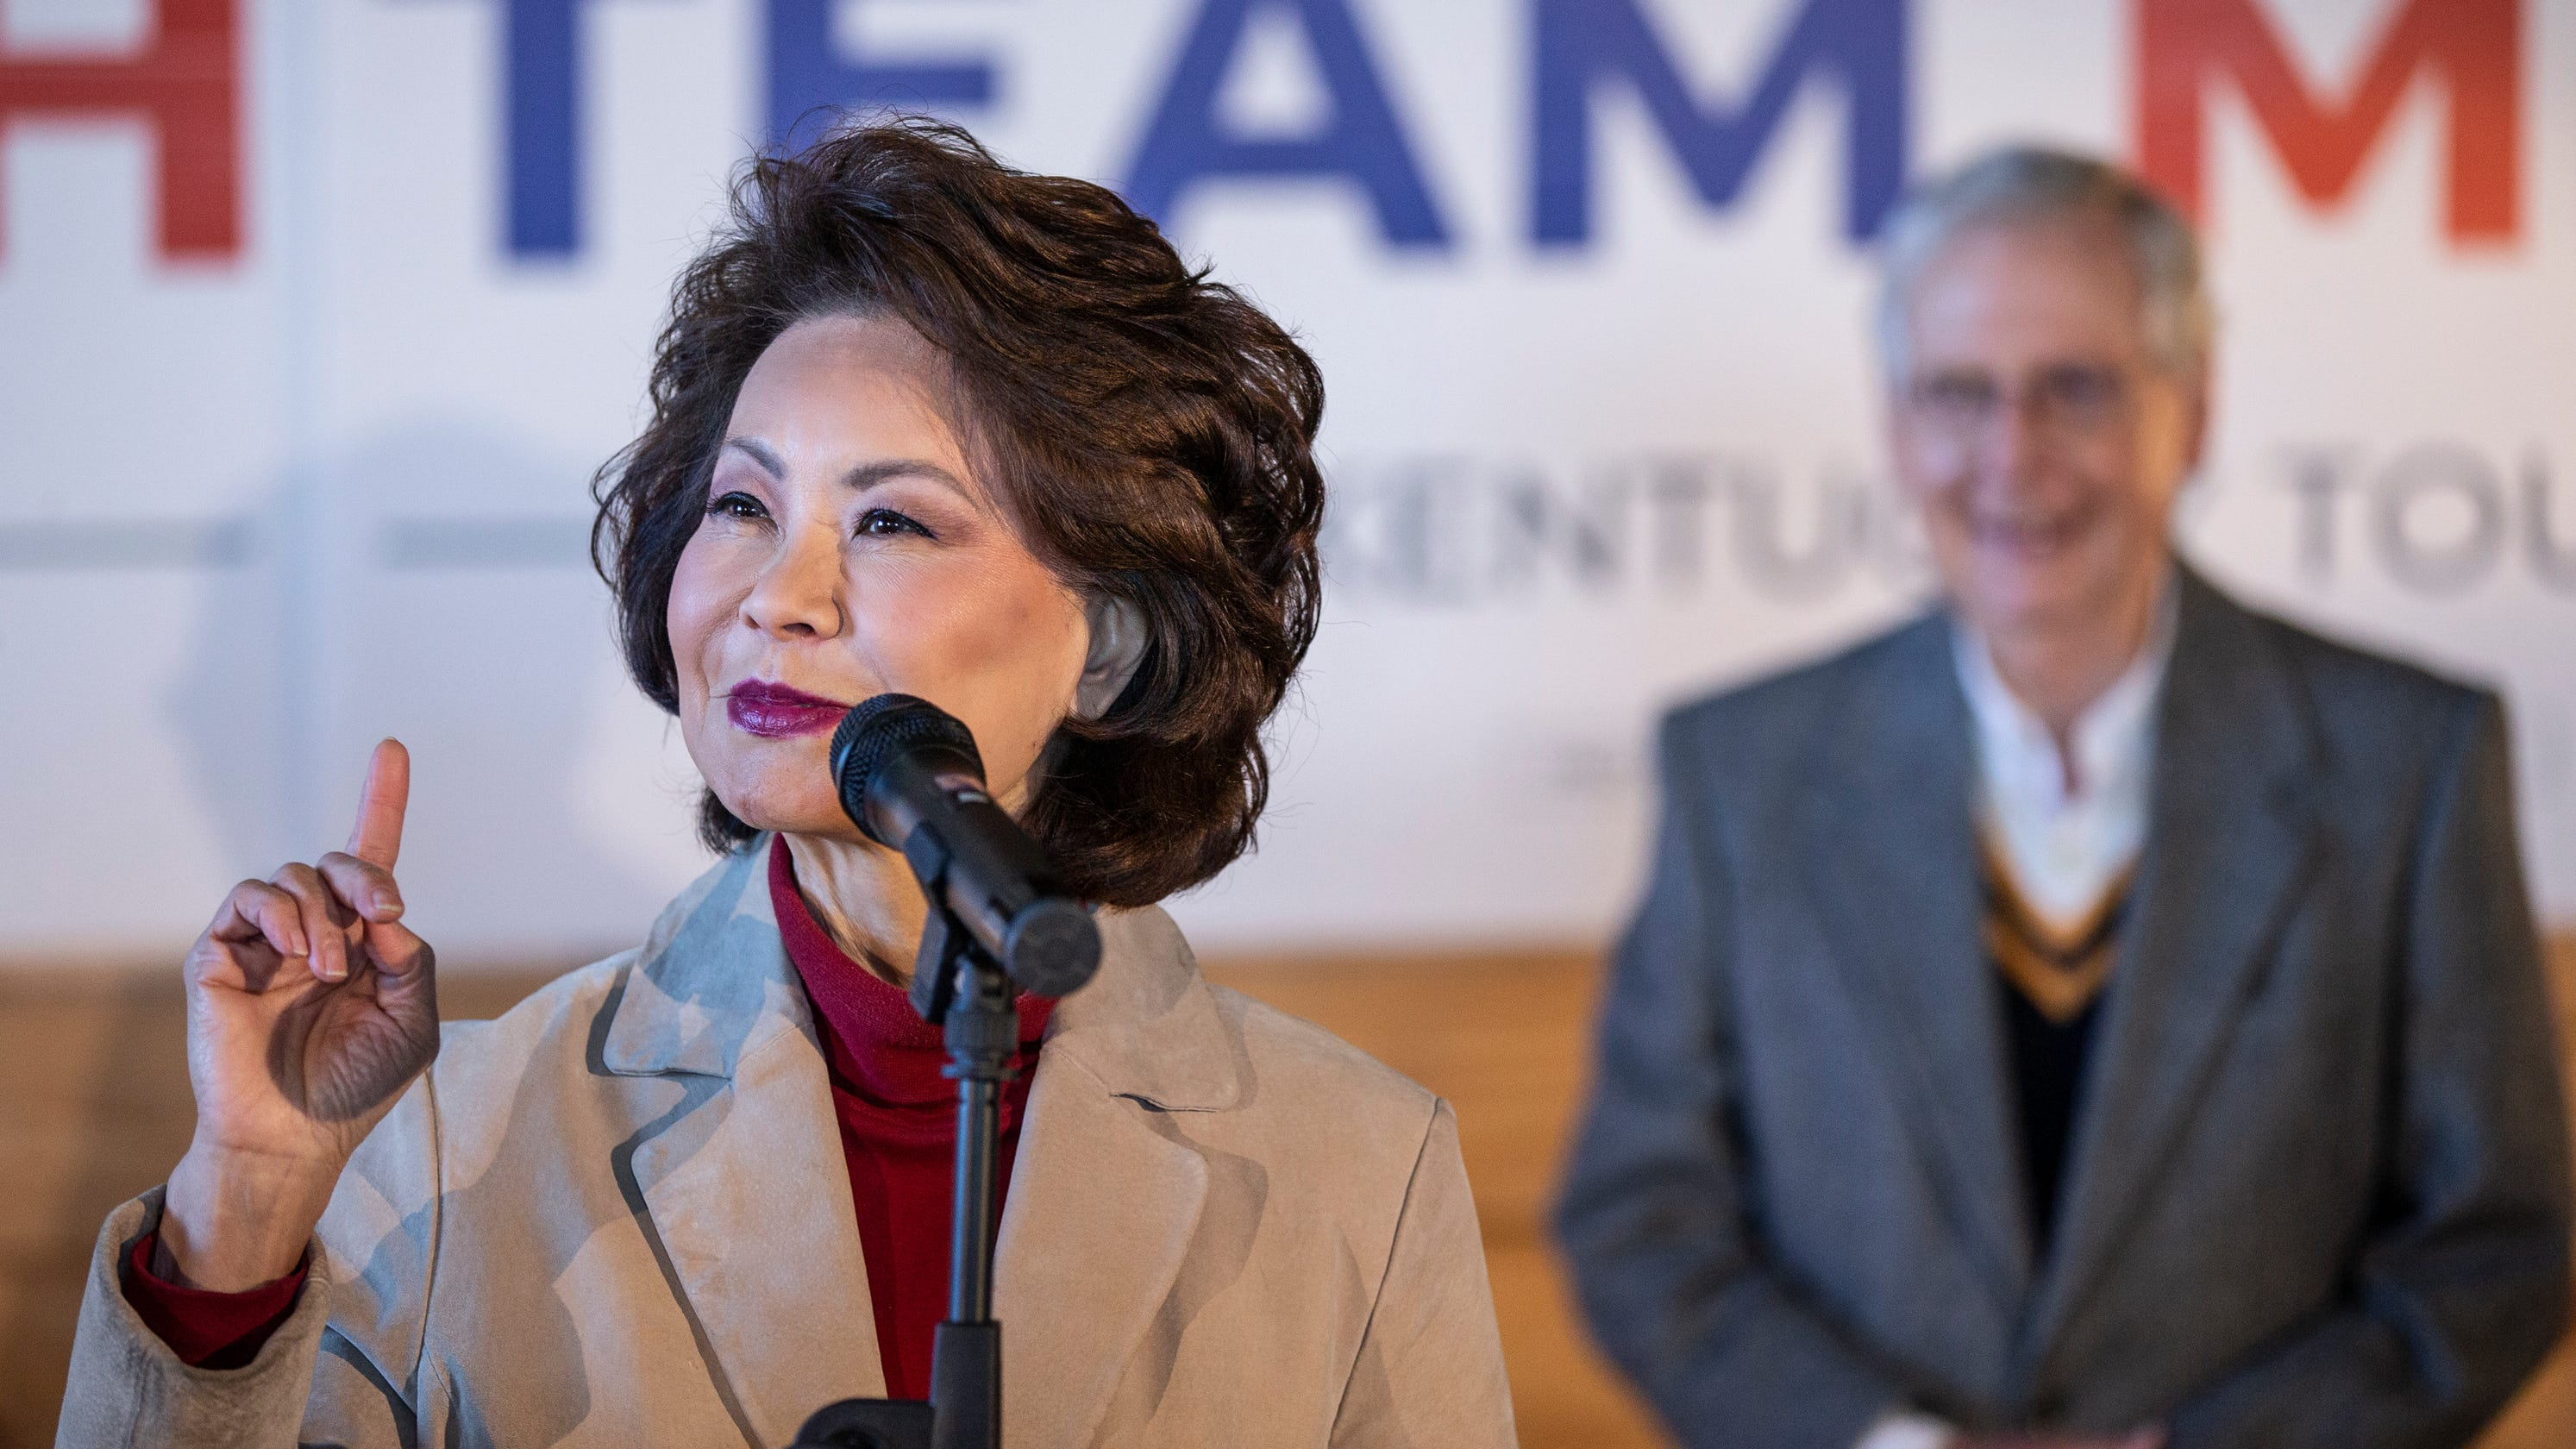 Internal watchdog said ex-Transportation Secretary Elaine Chao misused position, referred case for prosecution